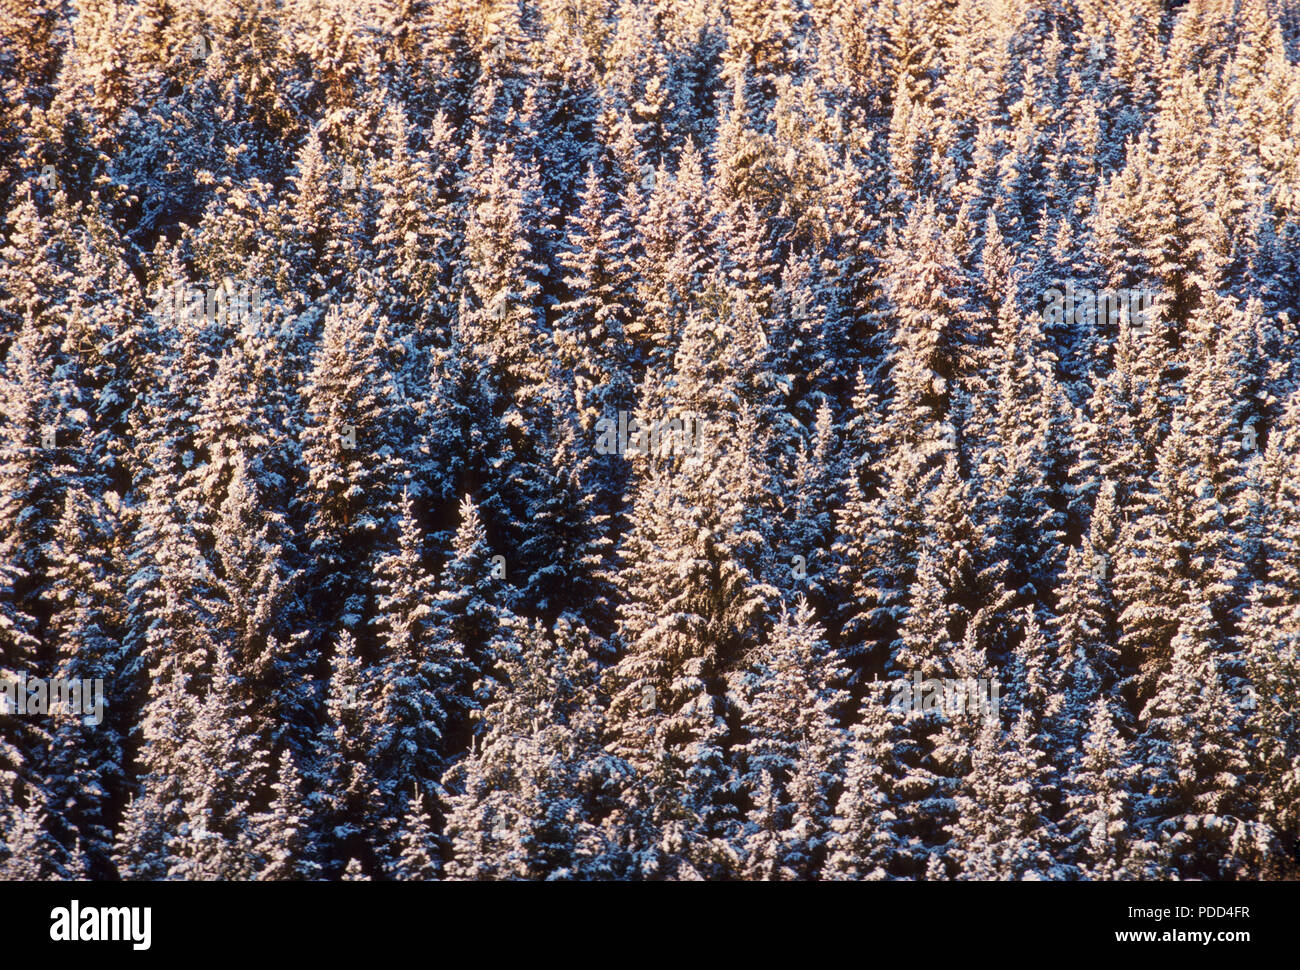 Taiga, boreal forest, coniferous evergreen forest. White spruce, Picea glauca, trees with snow, Alberta - Stock Image